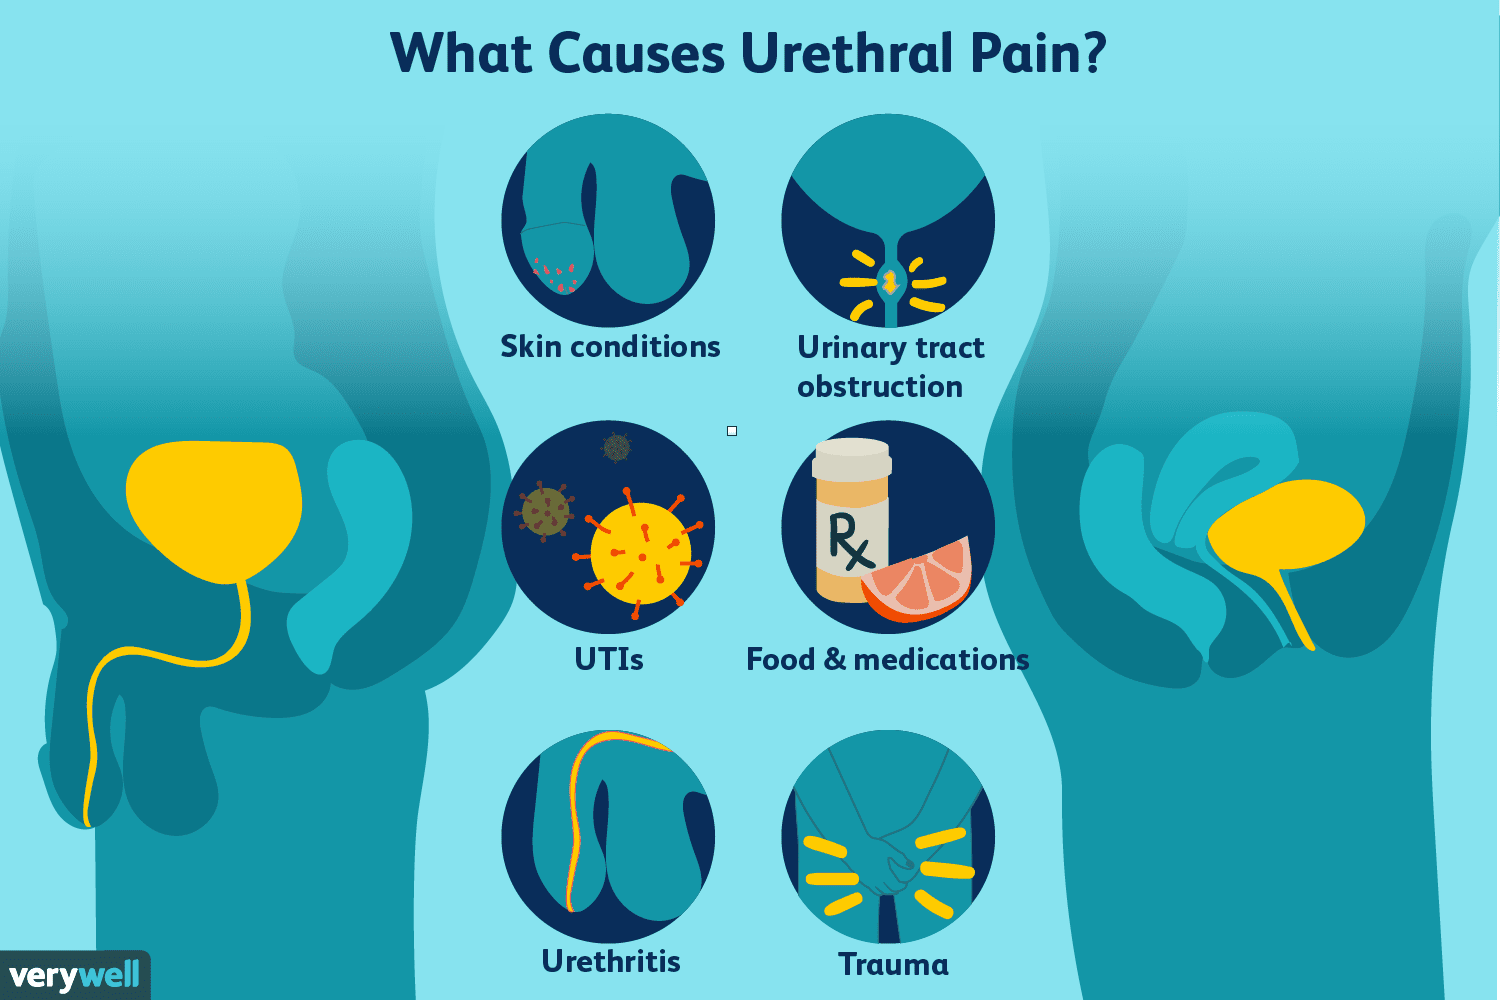 Urethral Pain: Causes, Treatment, When to See a Doctor